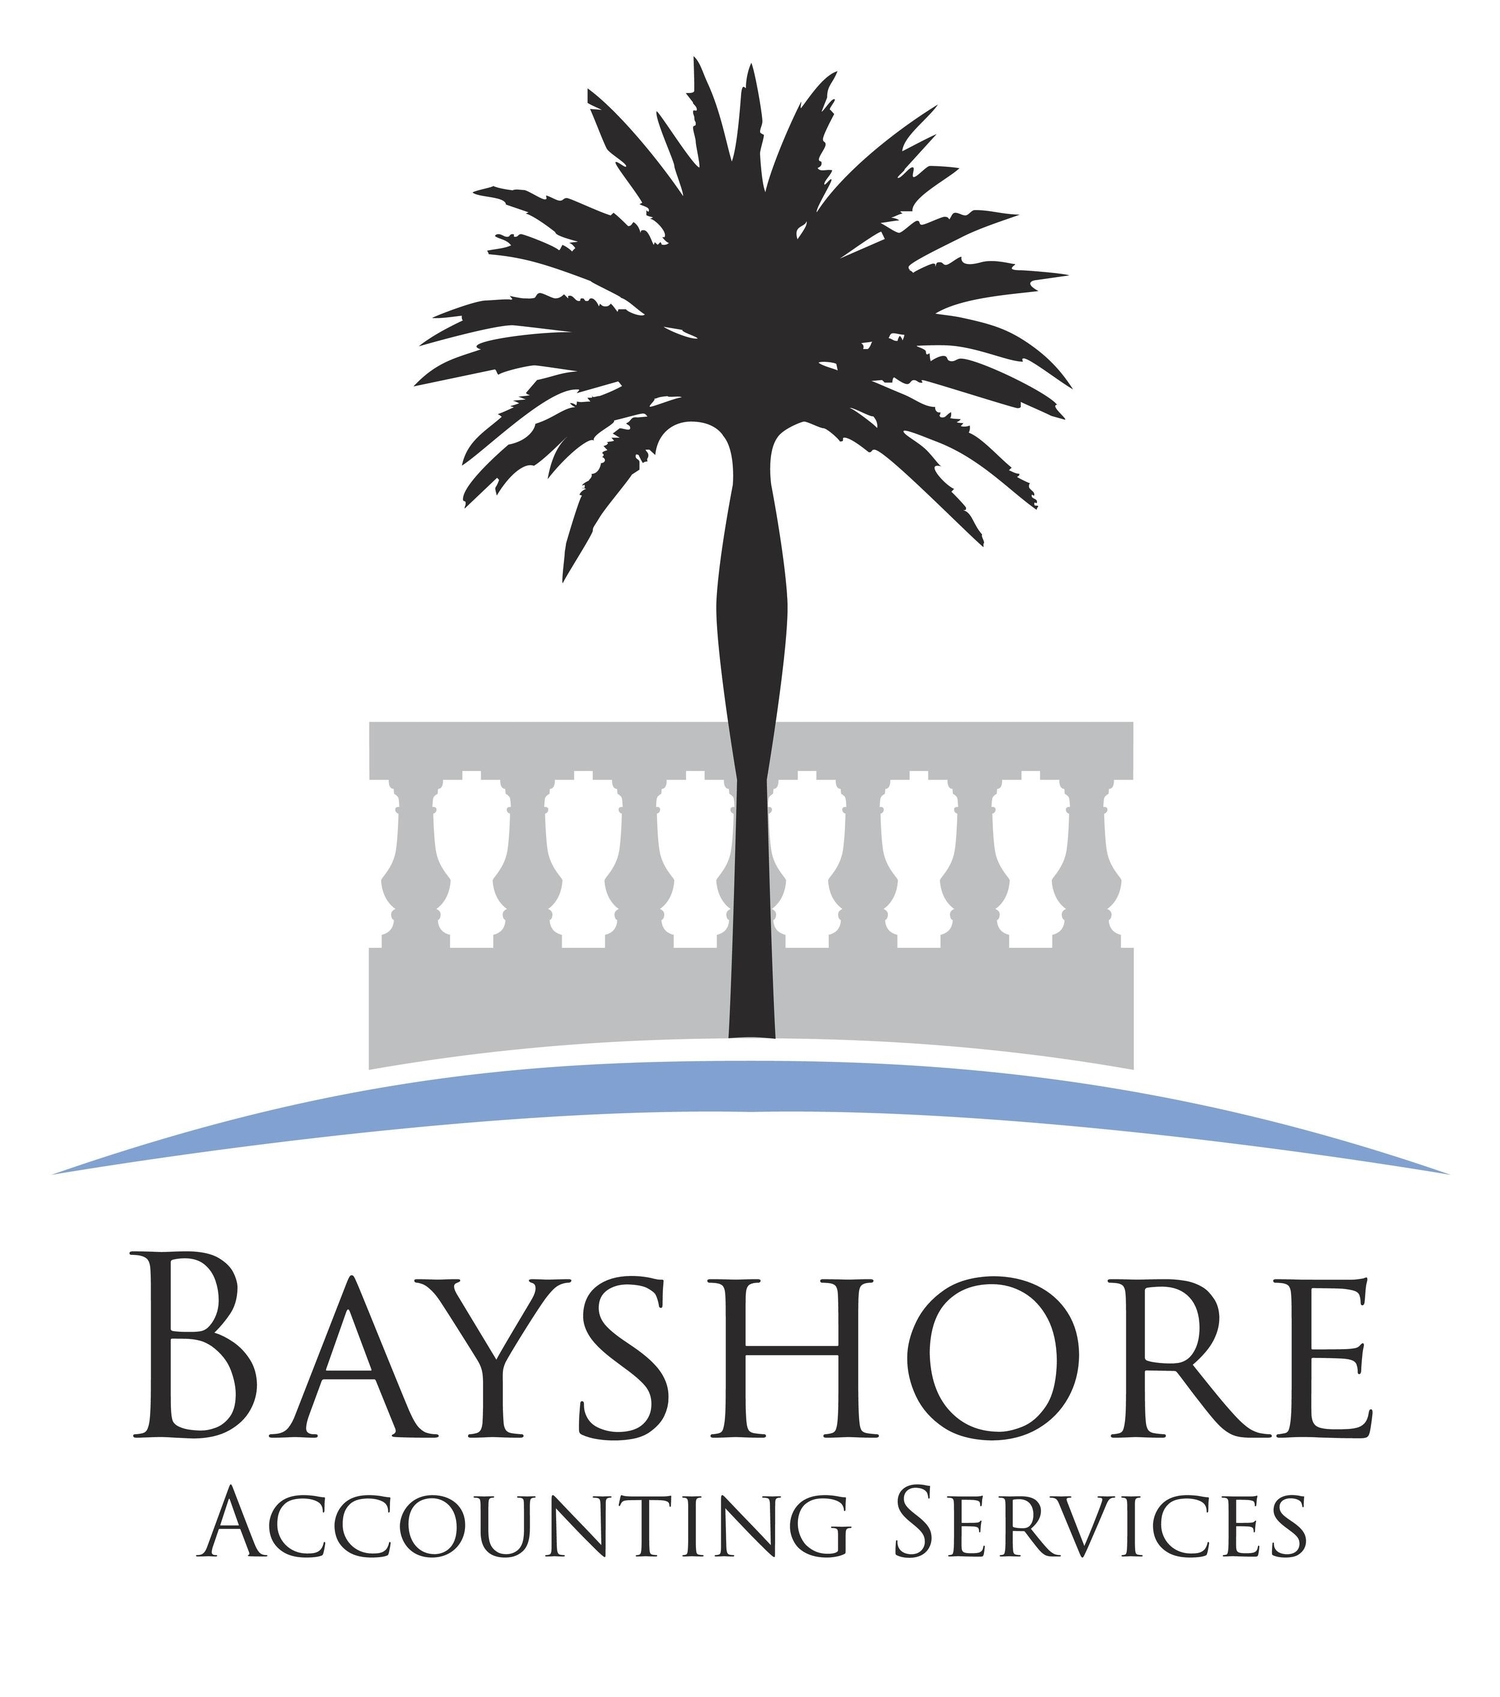 Bayshore Accounting Services